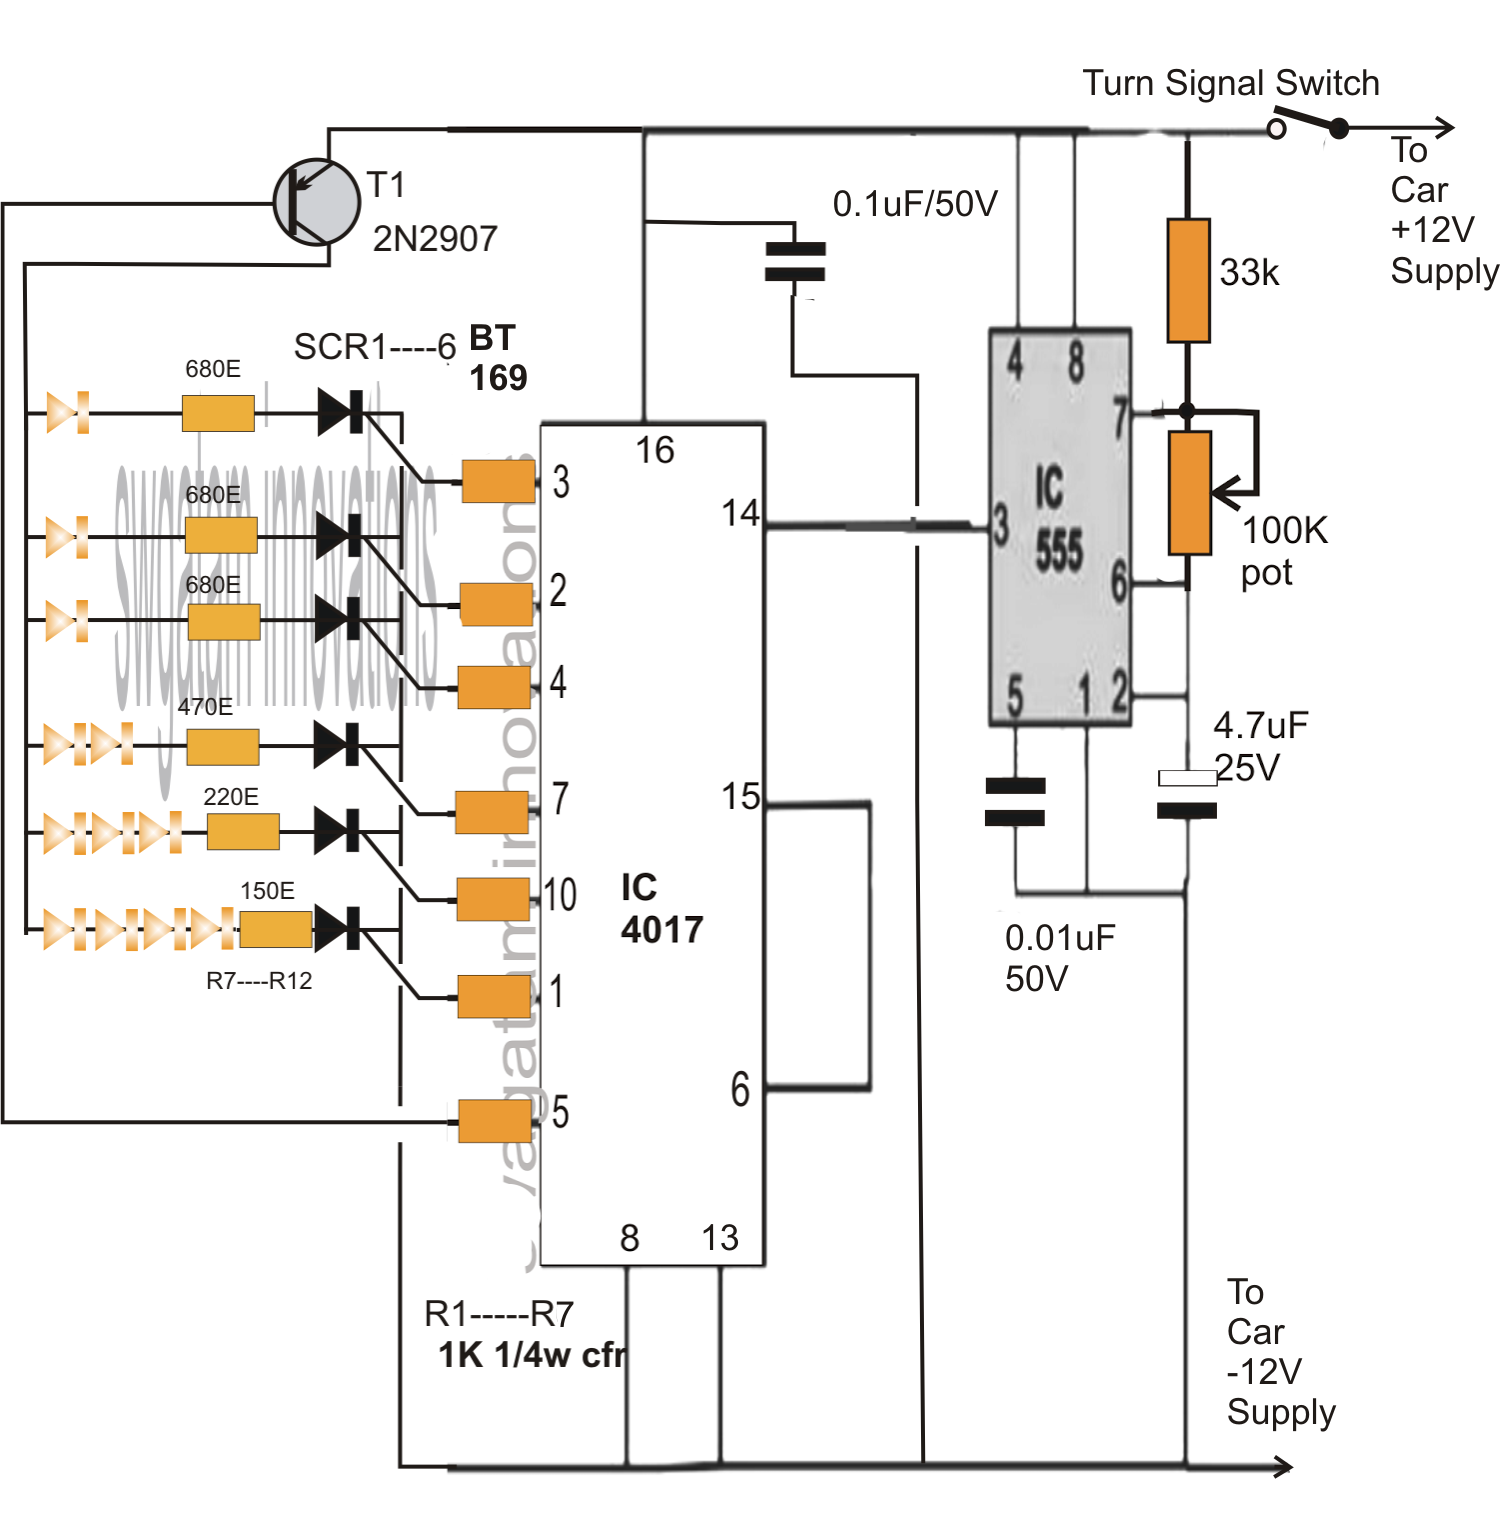 grote universal turn signal switch wiring diagram 1975 harley davidson sportster tail light wire free engine image